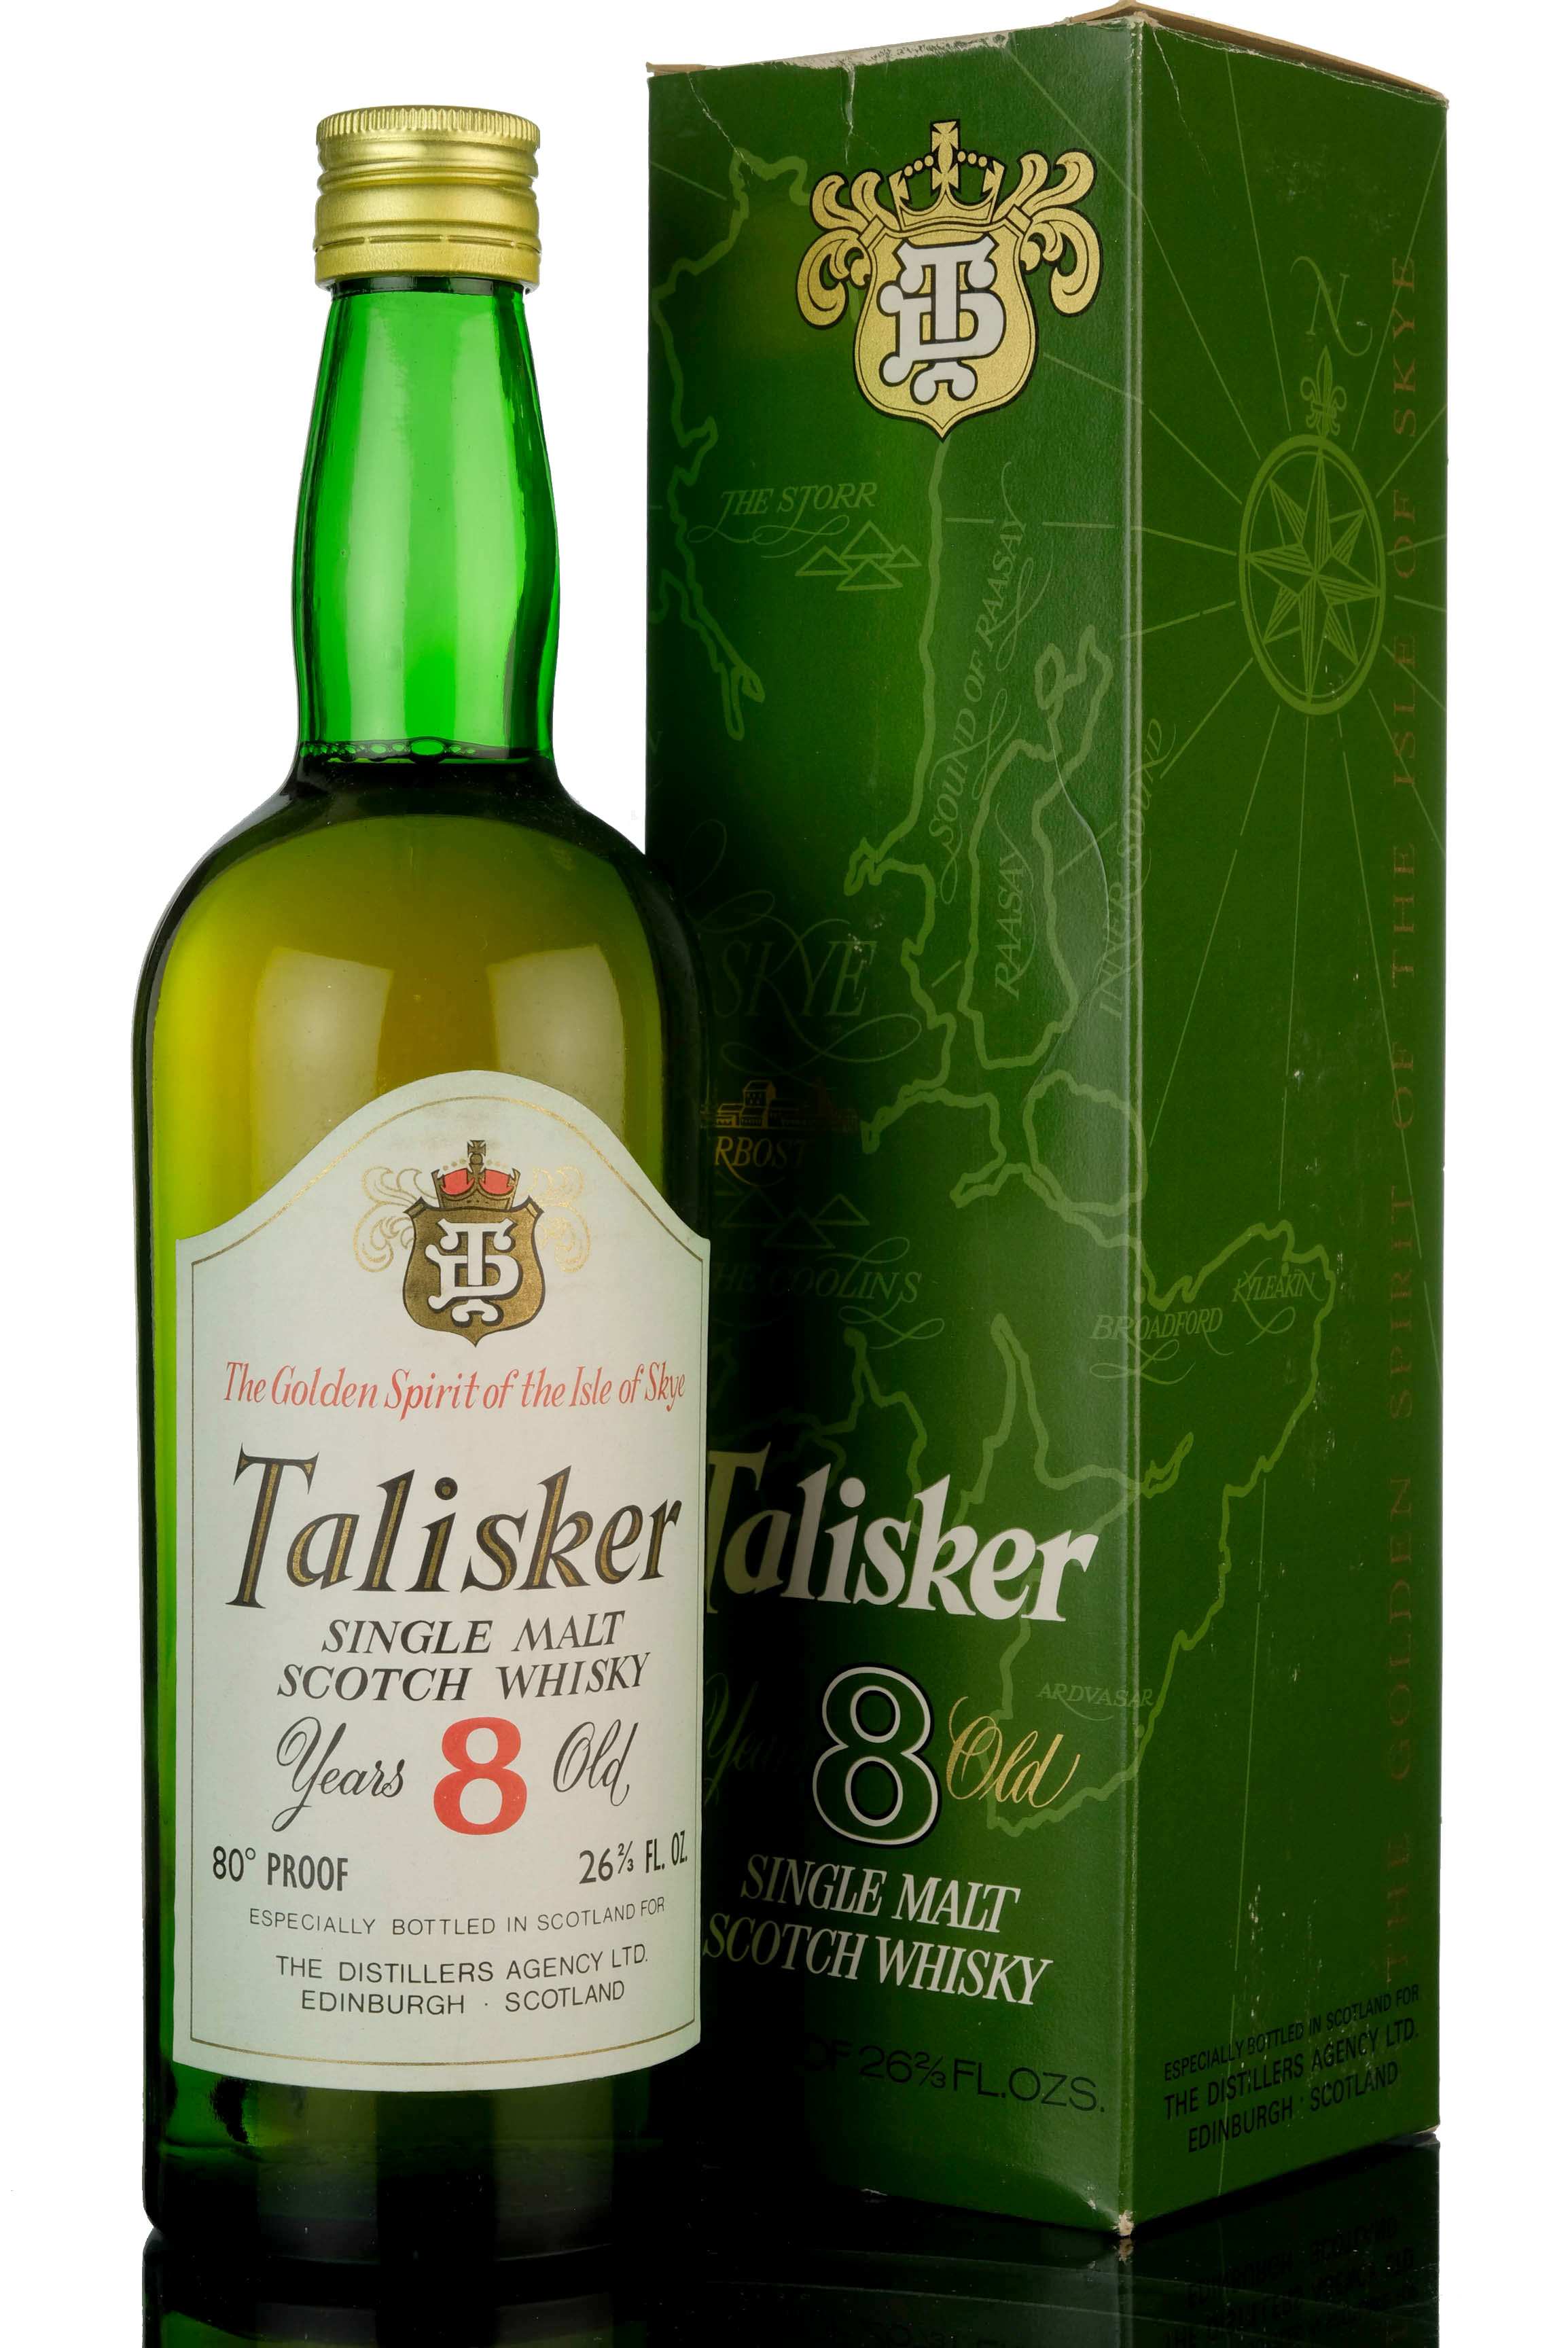 talisker 8 year old - late 1960s